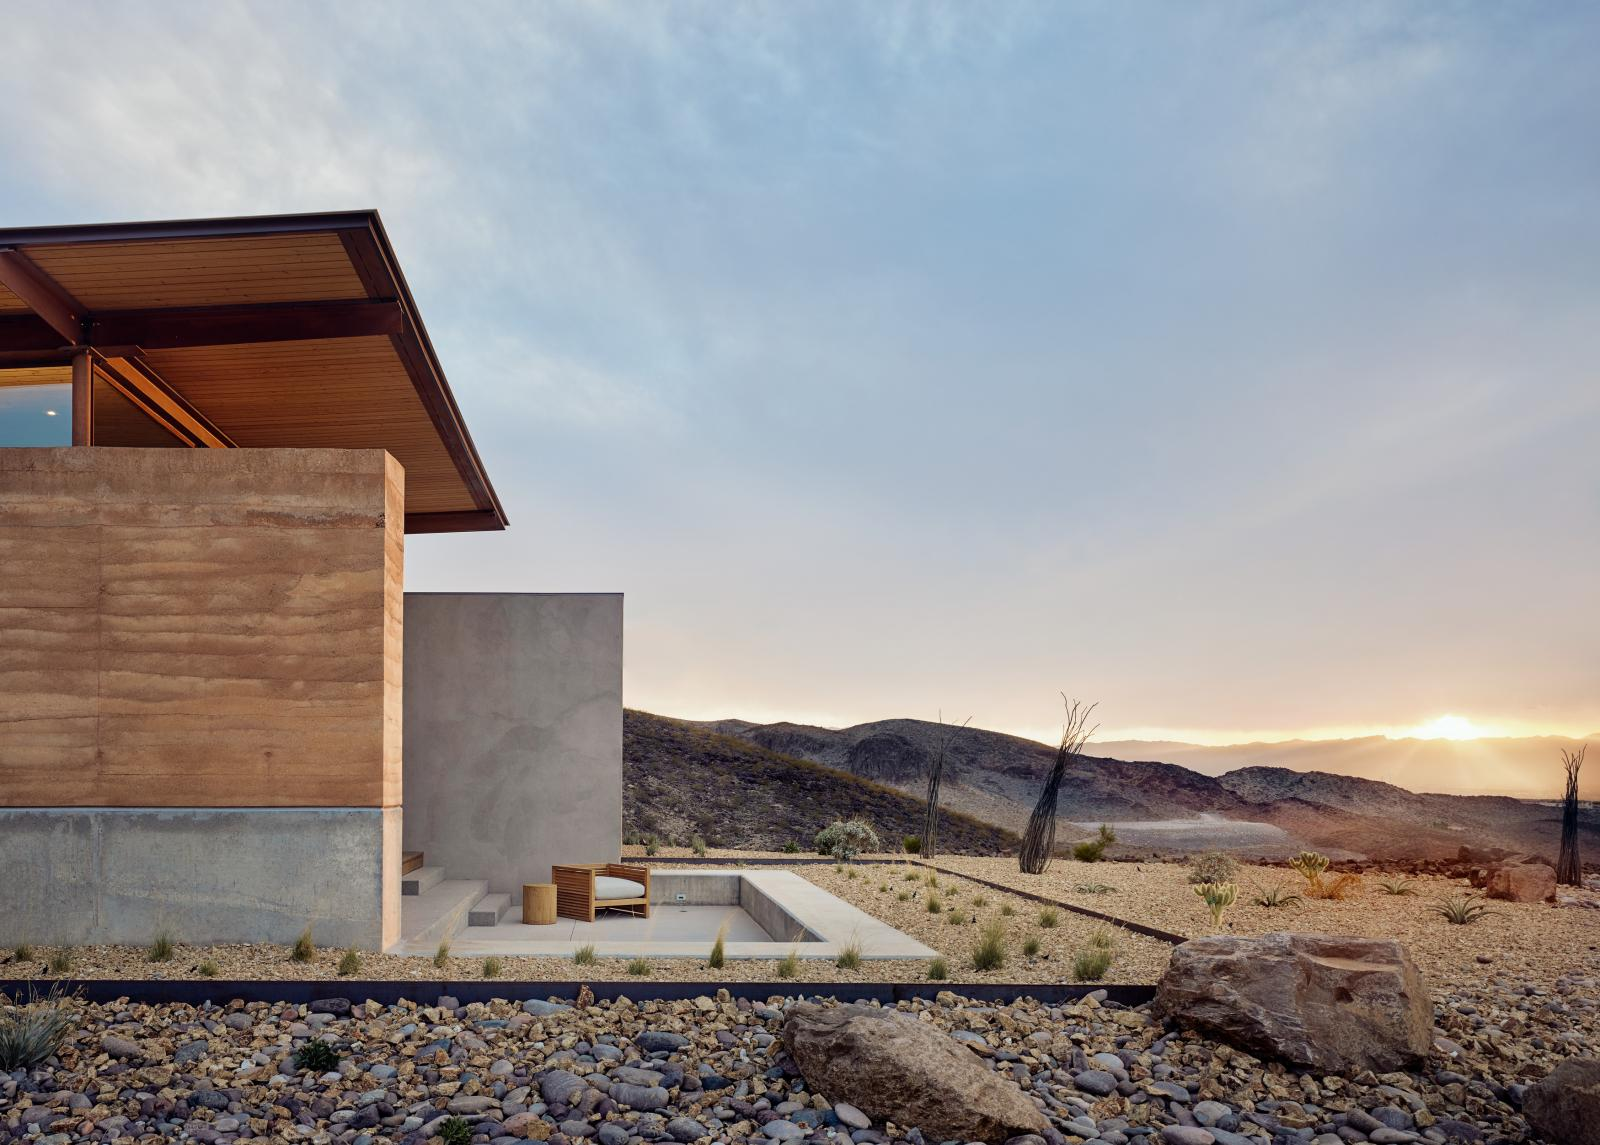 The rammed earth textures, colors and materials blend seamlessly with the surrounding desert.